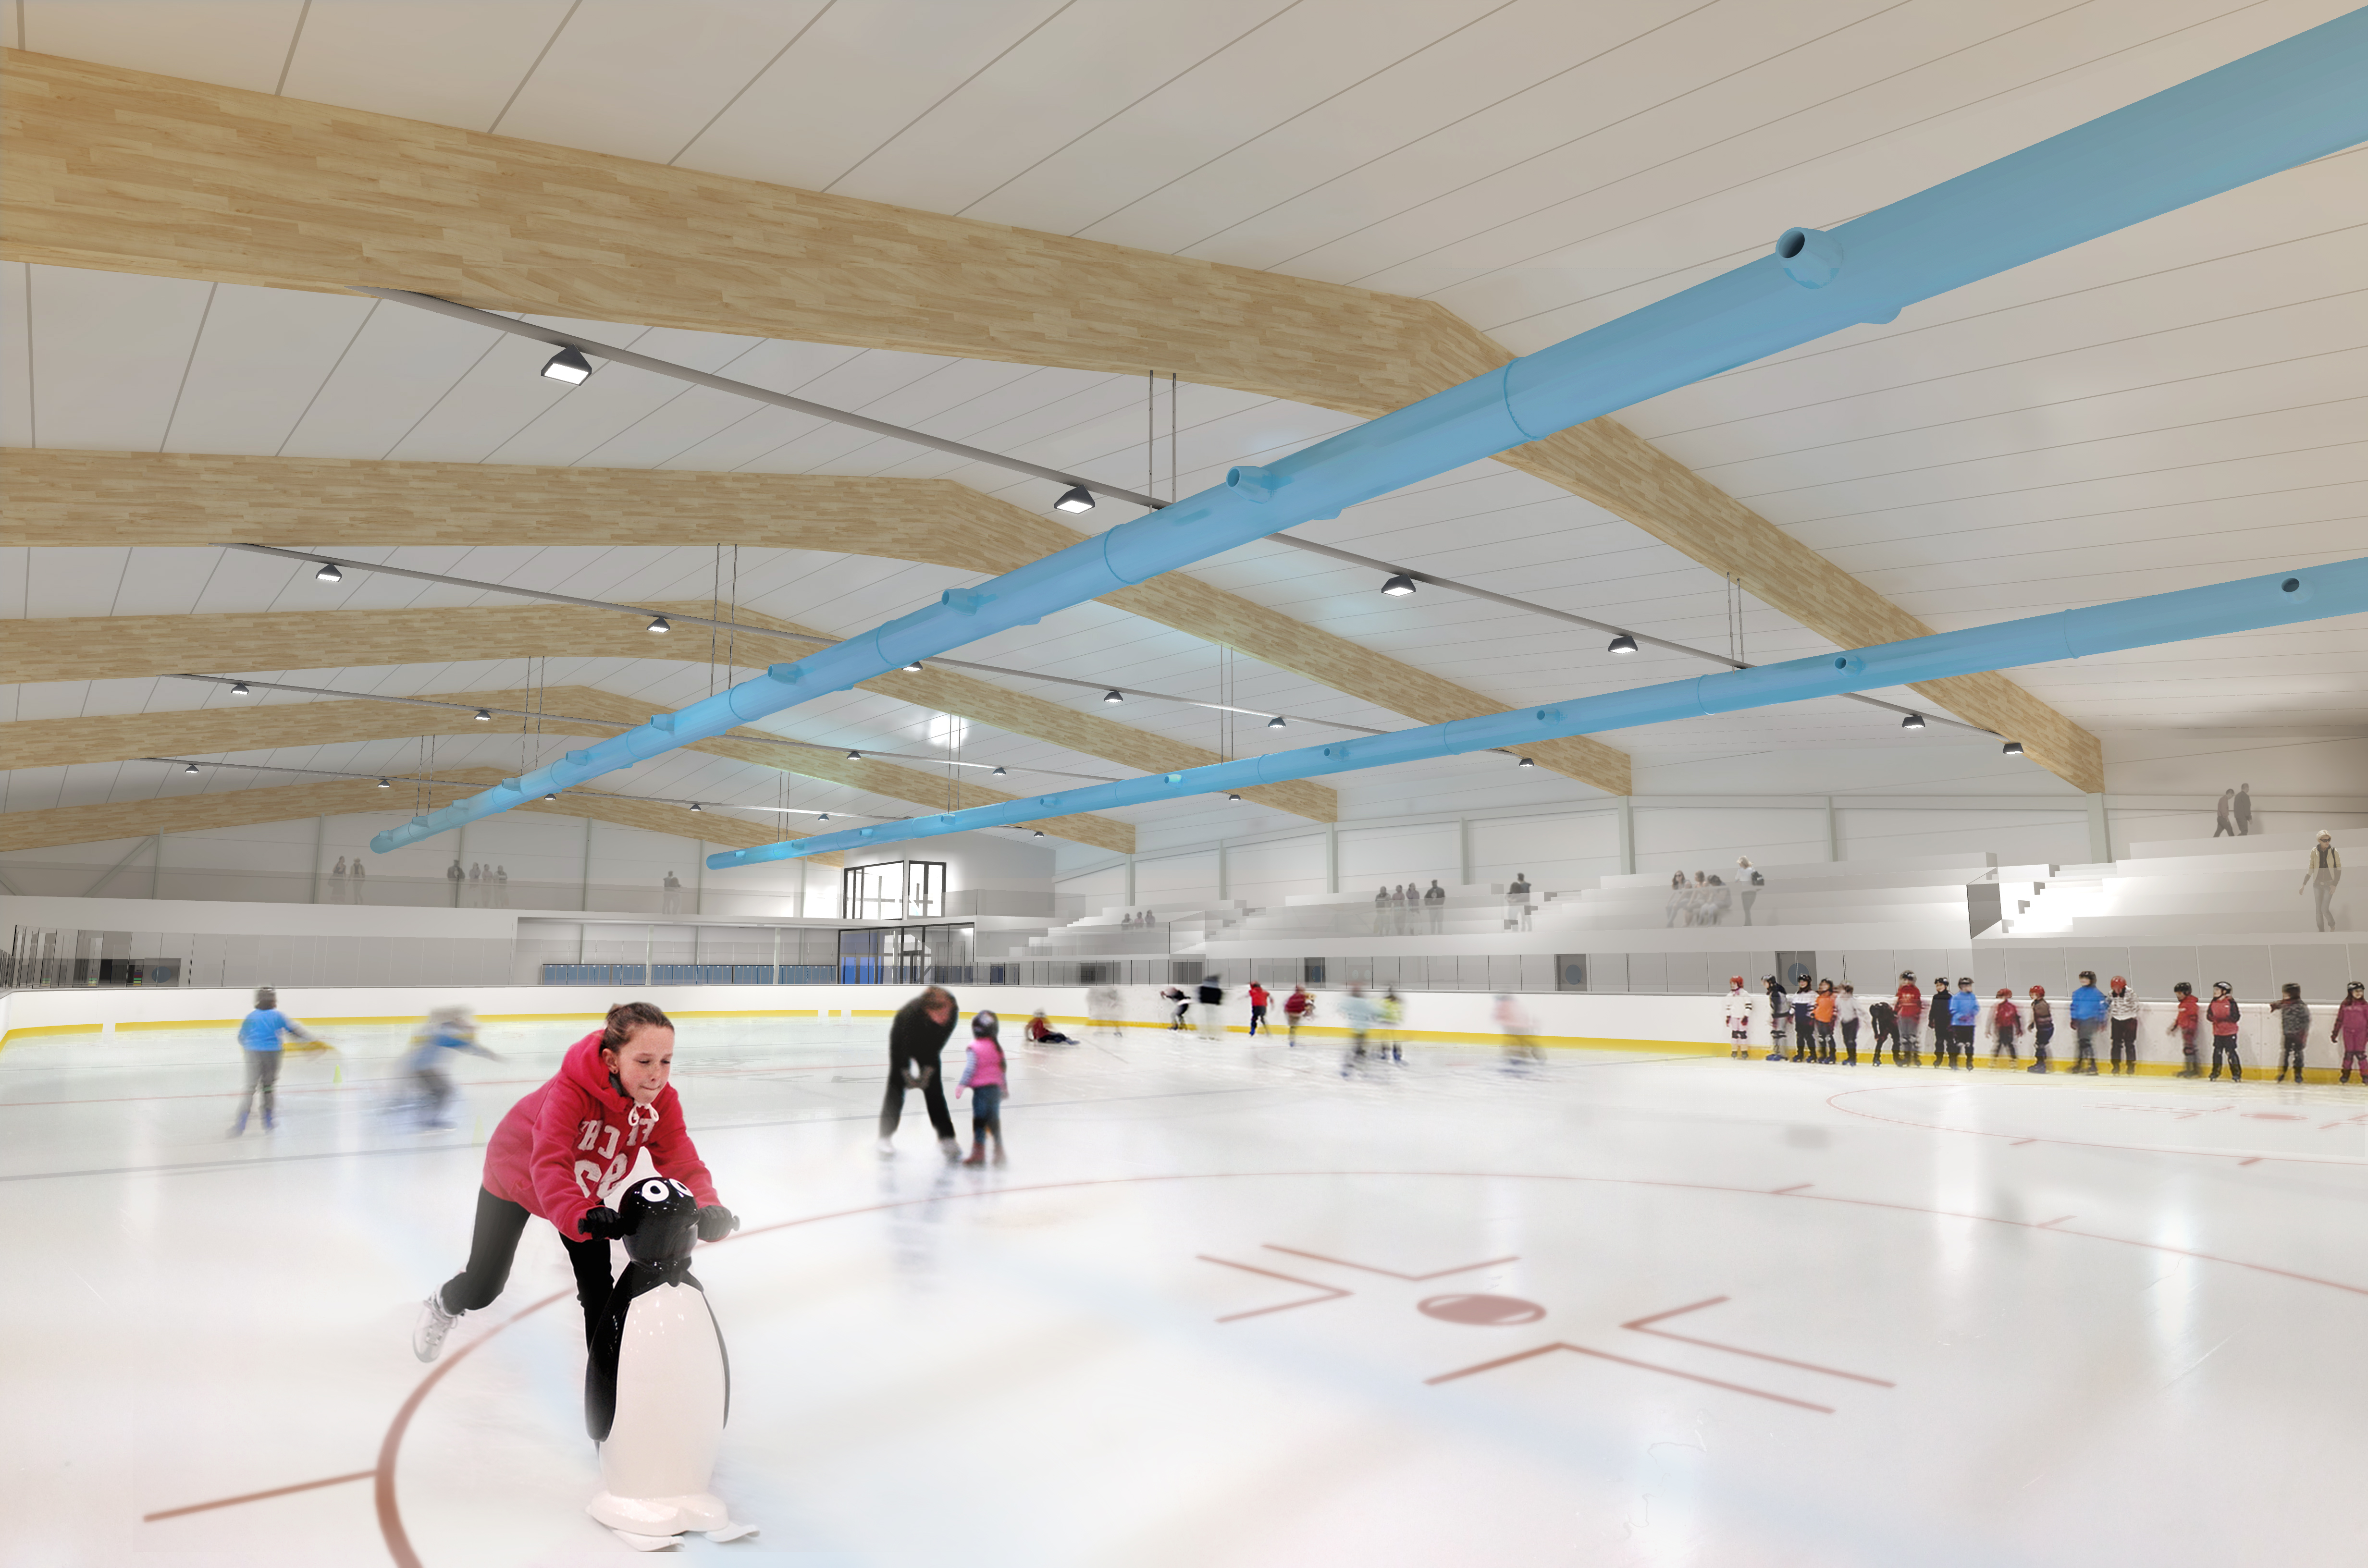 Cambridge ice rink 2